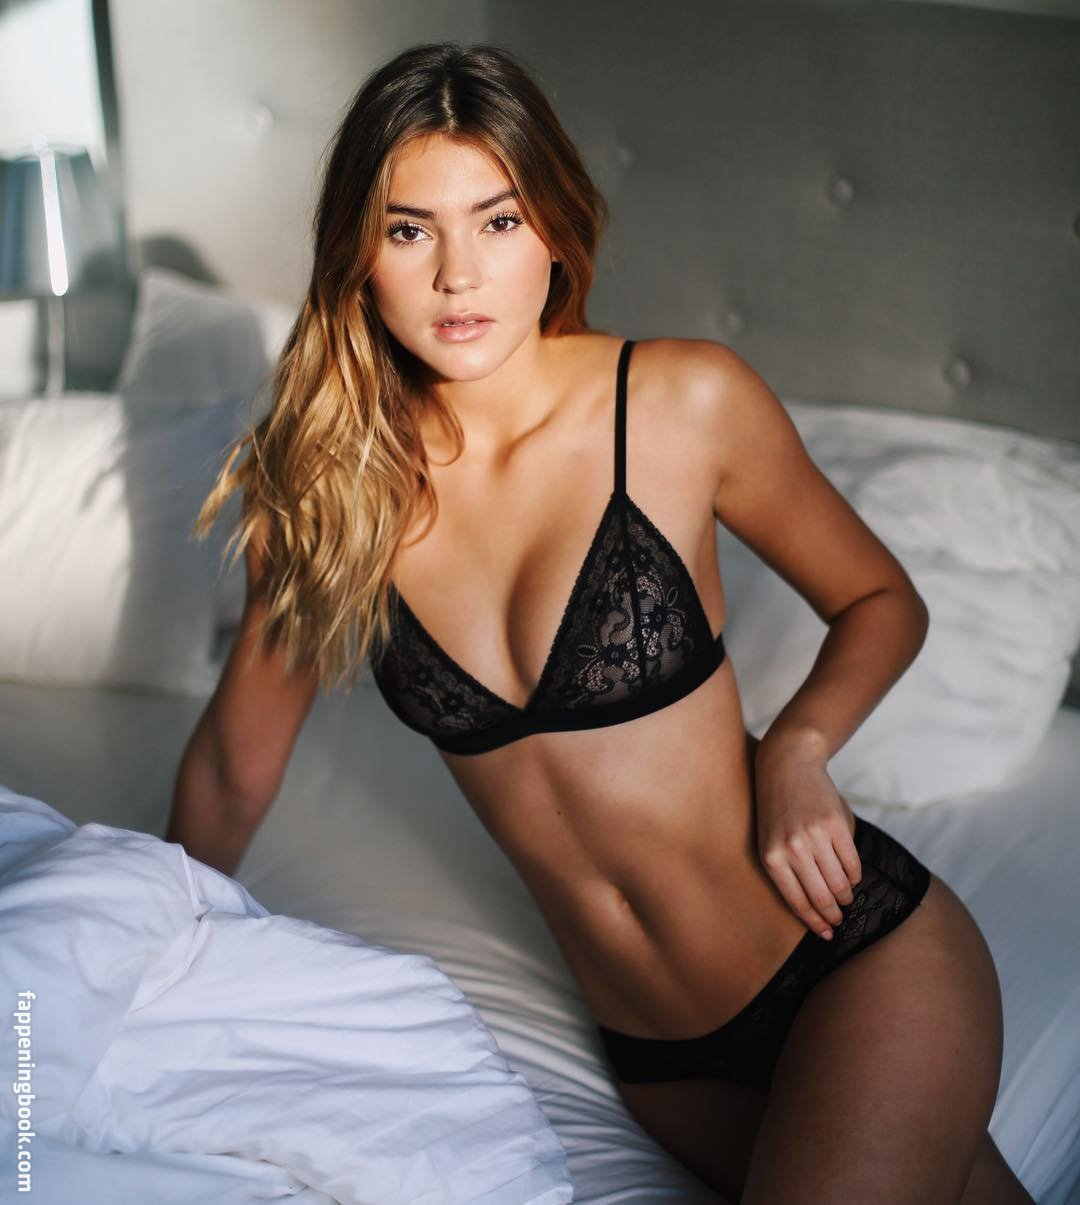 Stefanie Giesinger Nude, Sexy, The Fappening, Uncensored